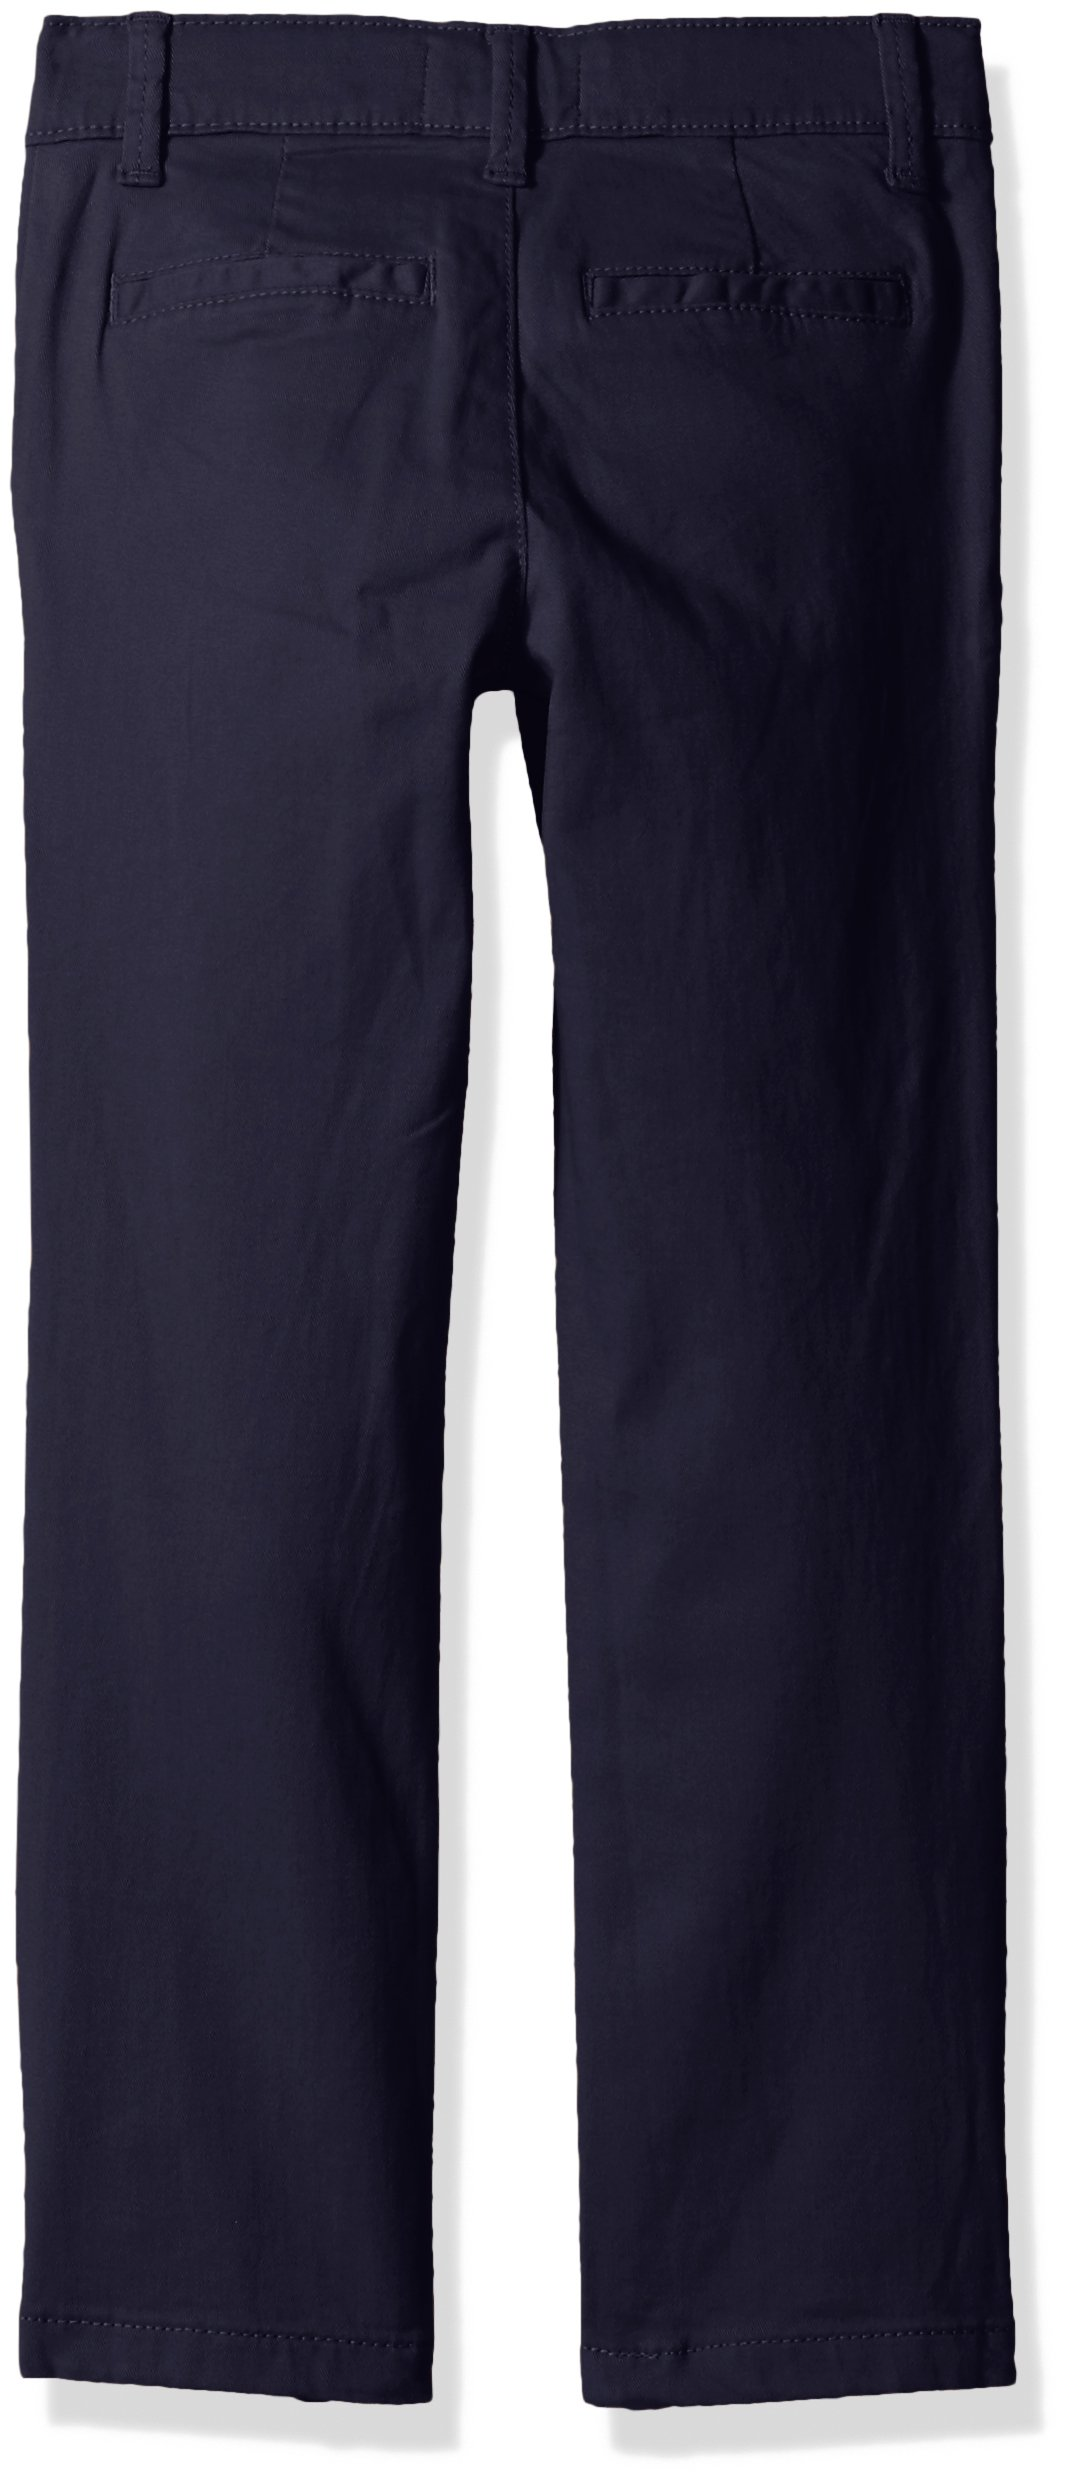 The Children's Place Girls Size' Skinny Uniform Pants, Tidal 4406, 5 Plus by The Children's Place (Image #2)